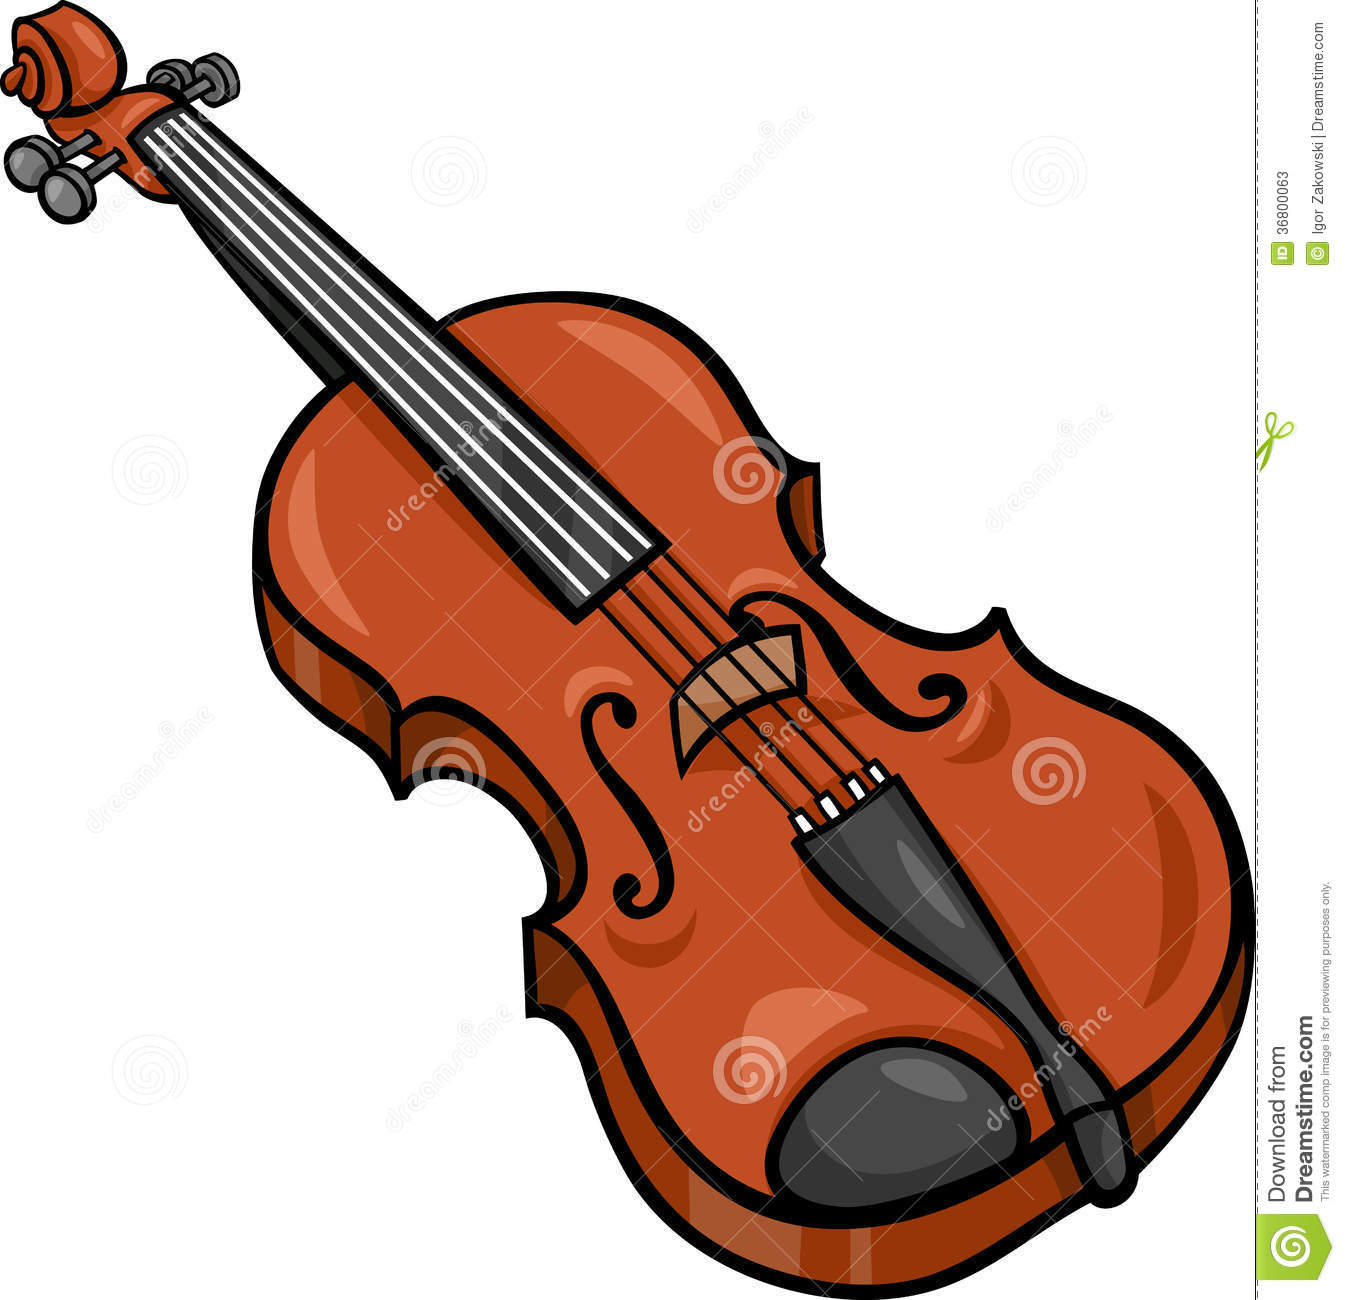 violin cartoon illustration clip art stock vector illustration of rh dreamstime com  fiddle clipart black and white